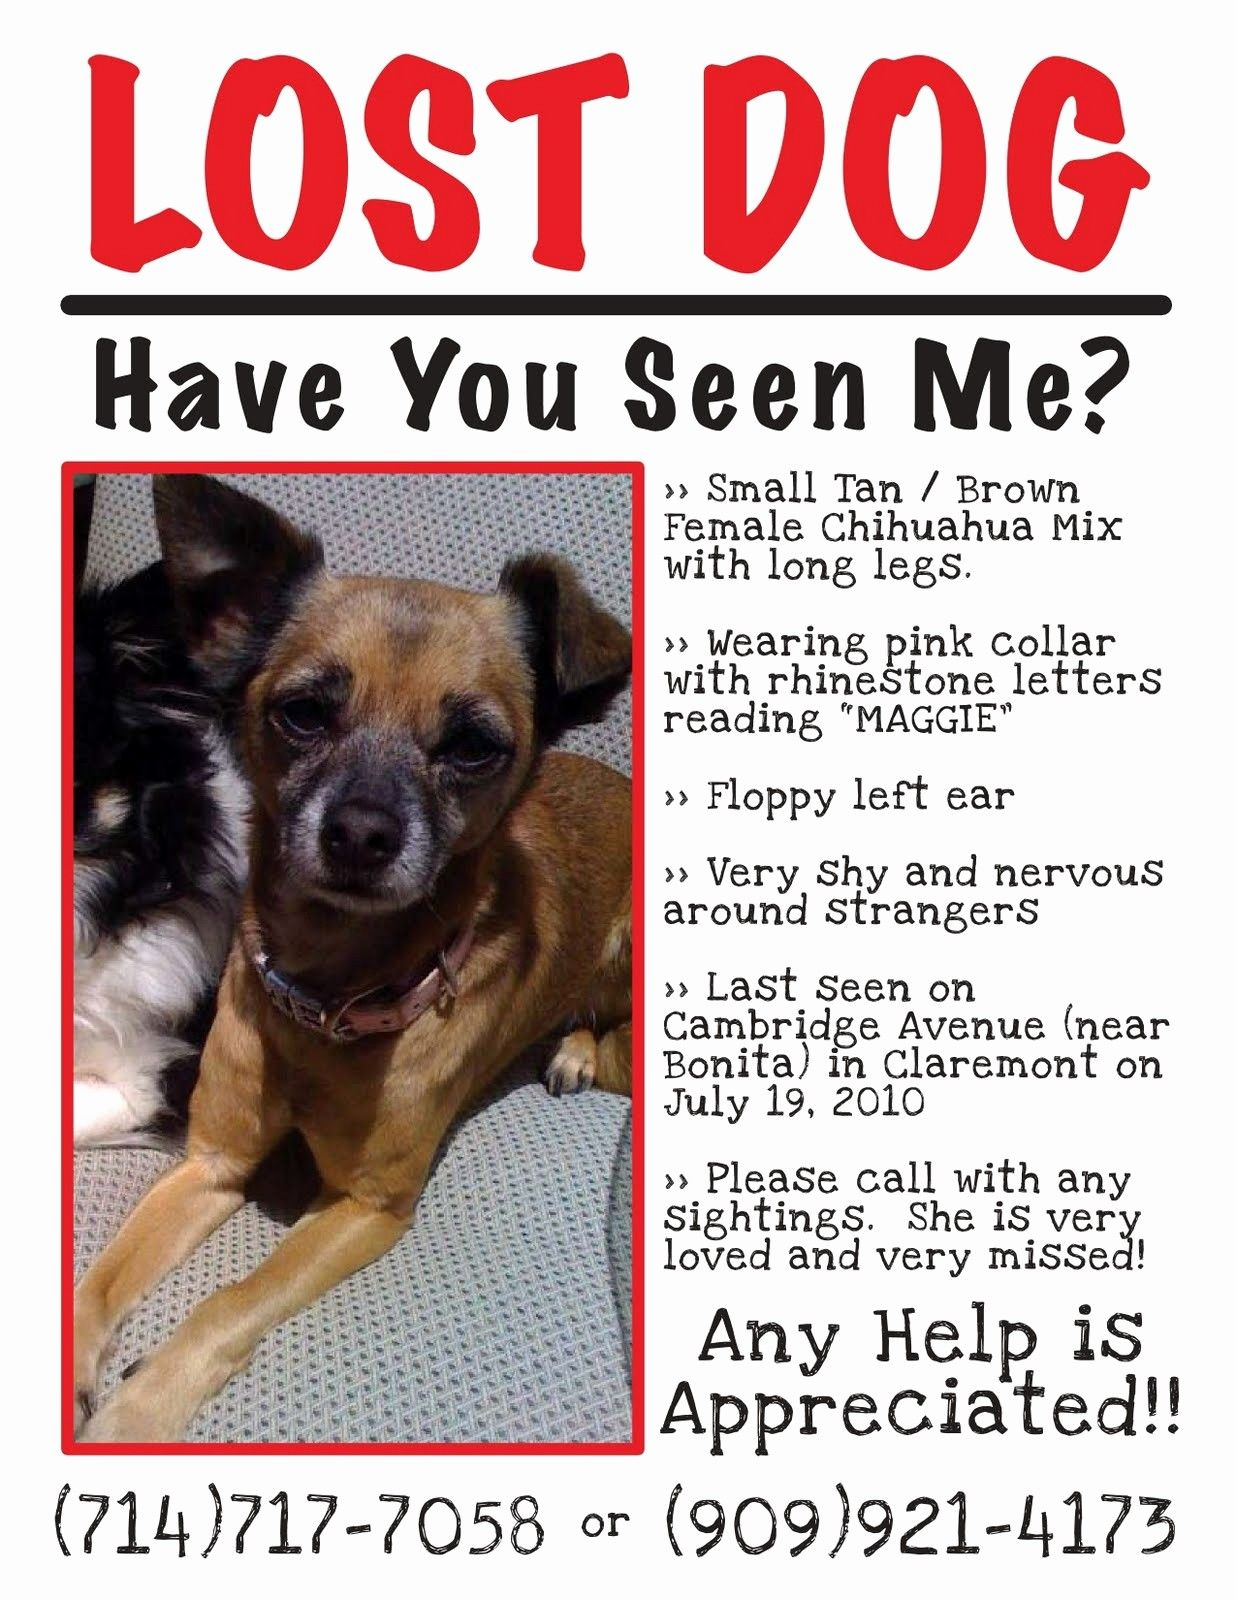 Unique Lost Pet Poster Template Thebridgesummit Ideas Missing Losing A Dog Dog Template Losing A Pet Lost and found poster template